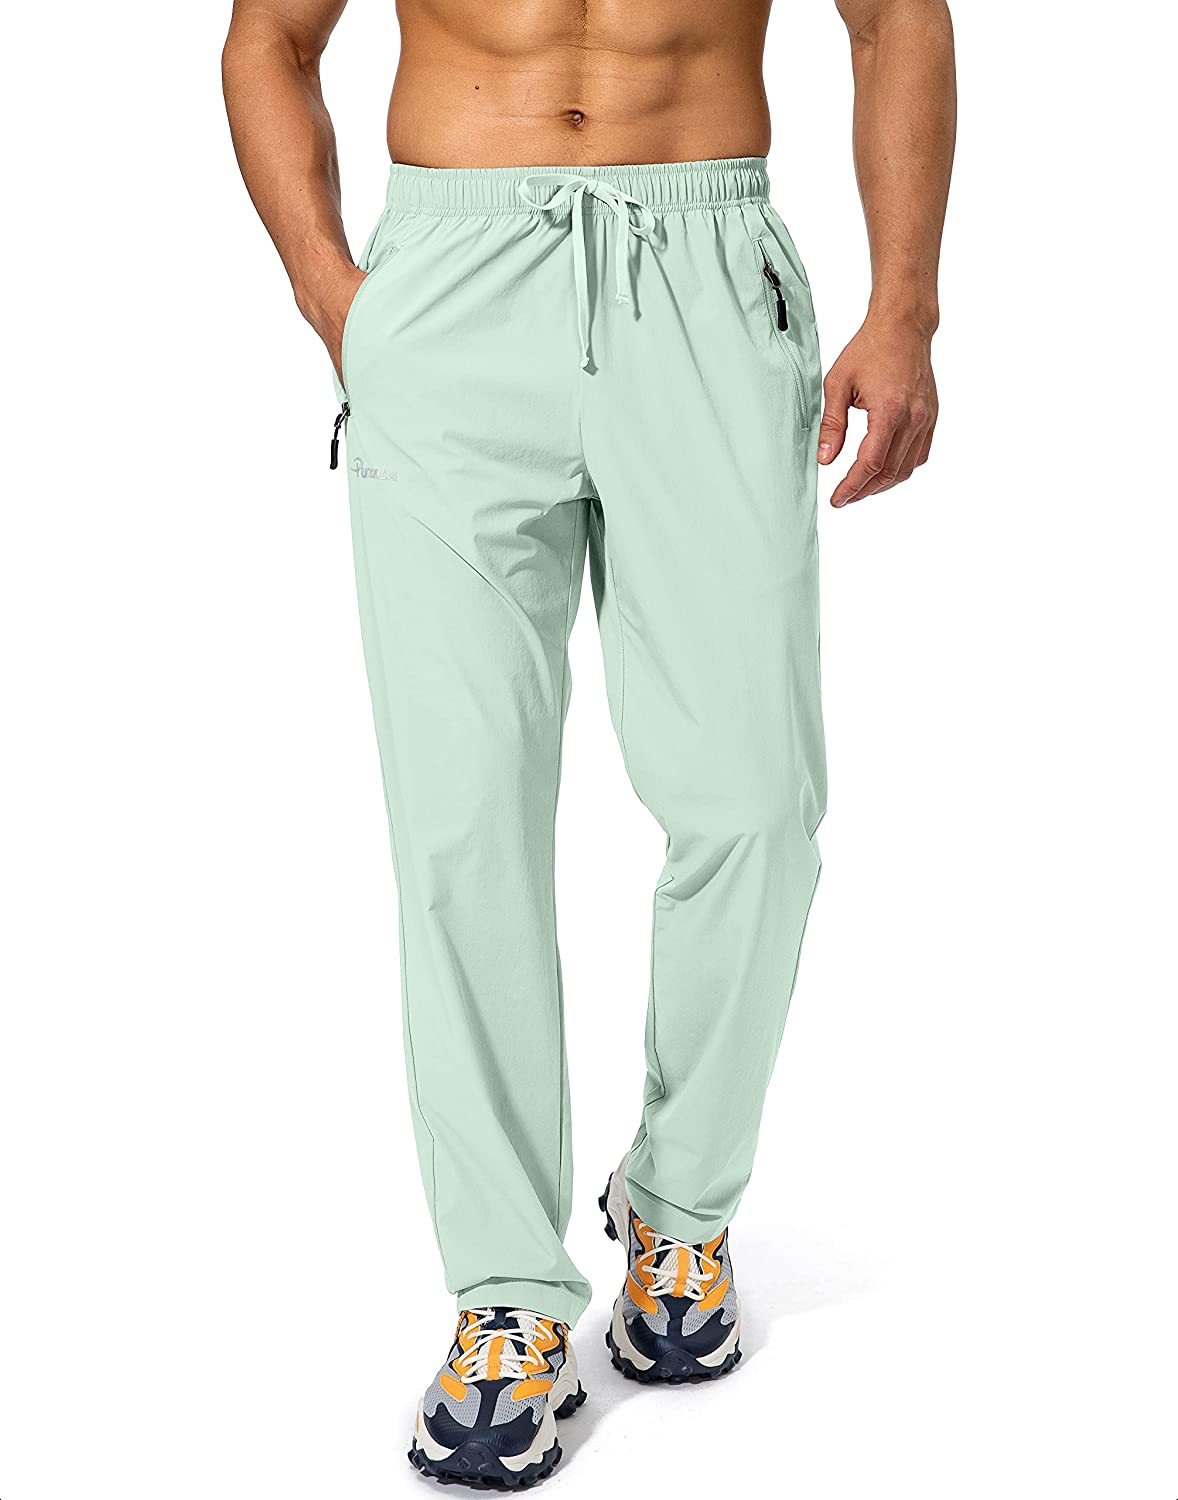 Pudolla Men's Workout Recommended Max 66% OFF Athletic Pants Waist Jogging Runni Elastic